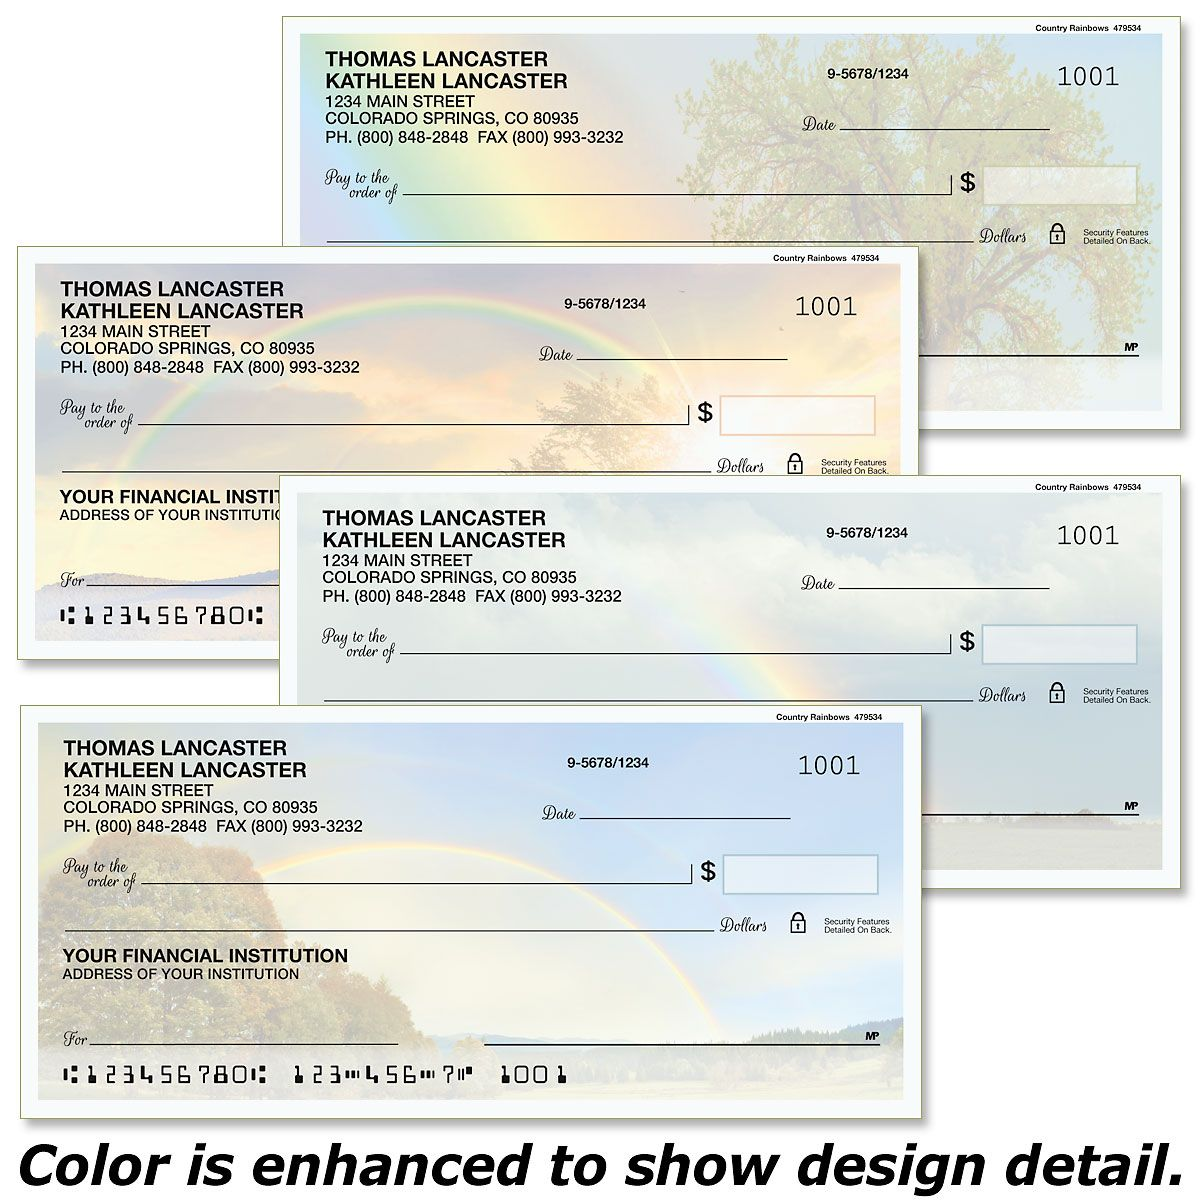 Country Rainbows Duplicate Checks